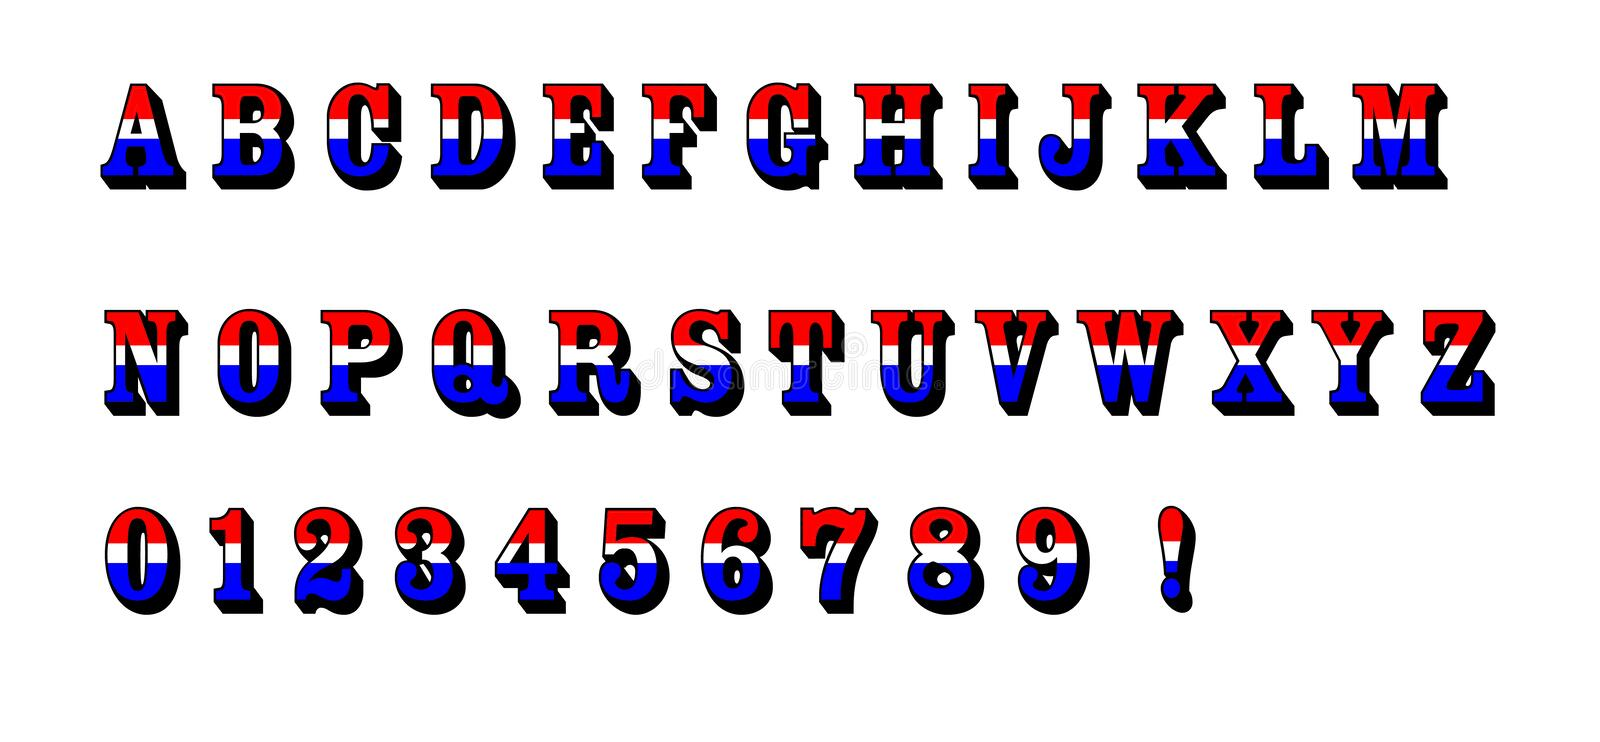 Red White Blue Alphabet Letters Text Patriotic USA. ABC Letters of the alphabet and numbers with a red, white, and blue patriotic theme. Please download the comp royalty free illustration